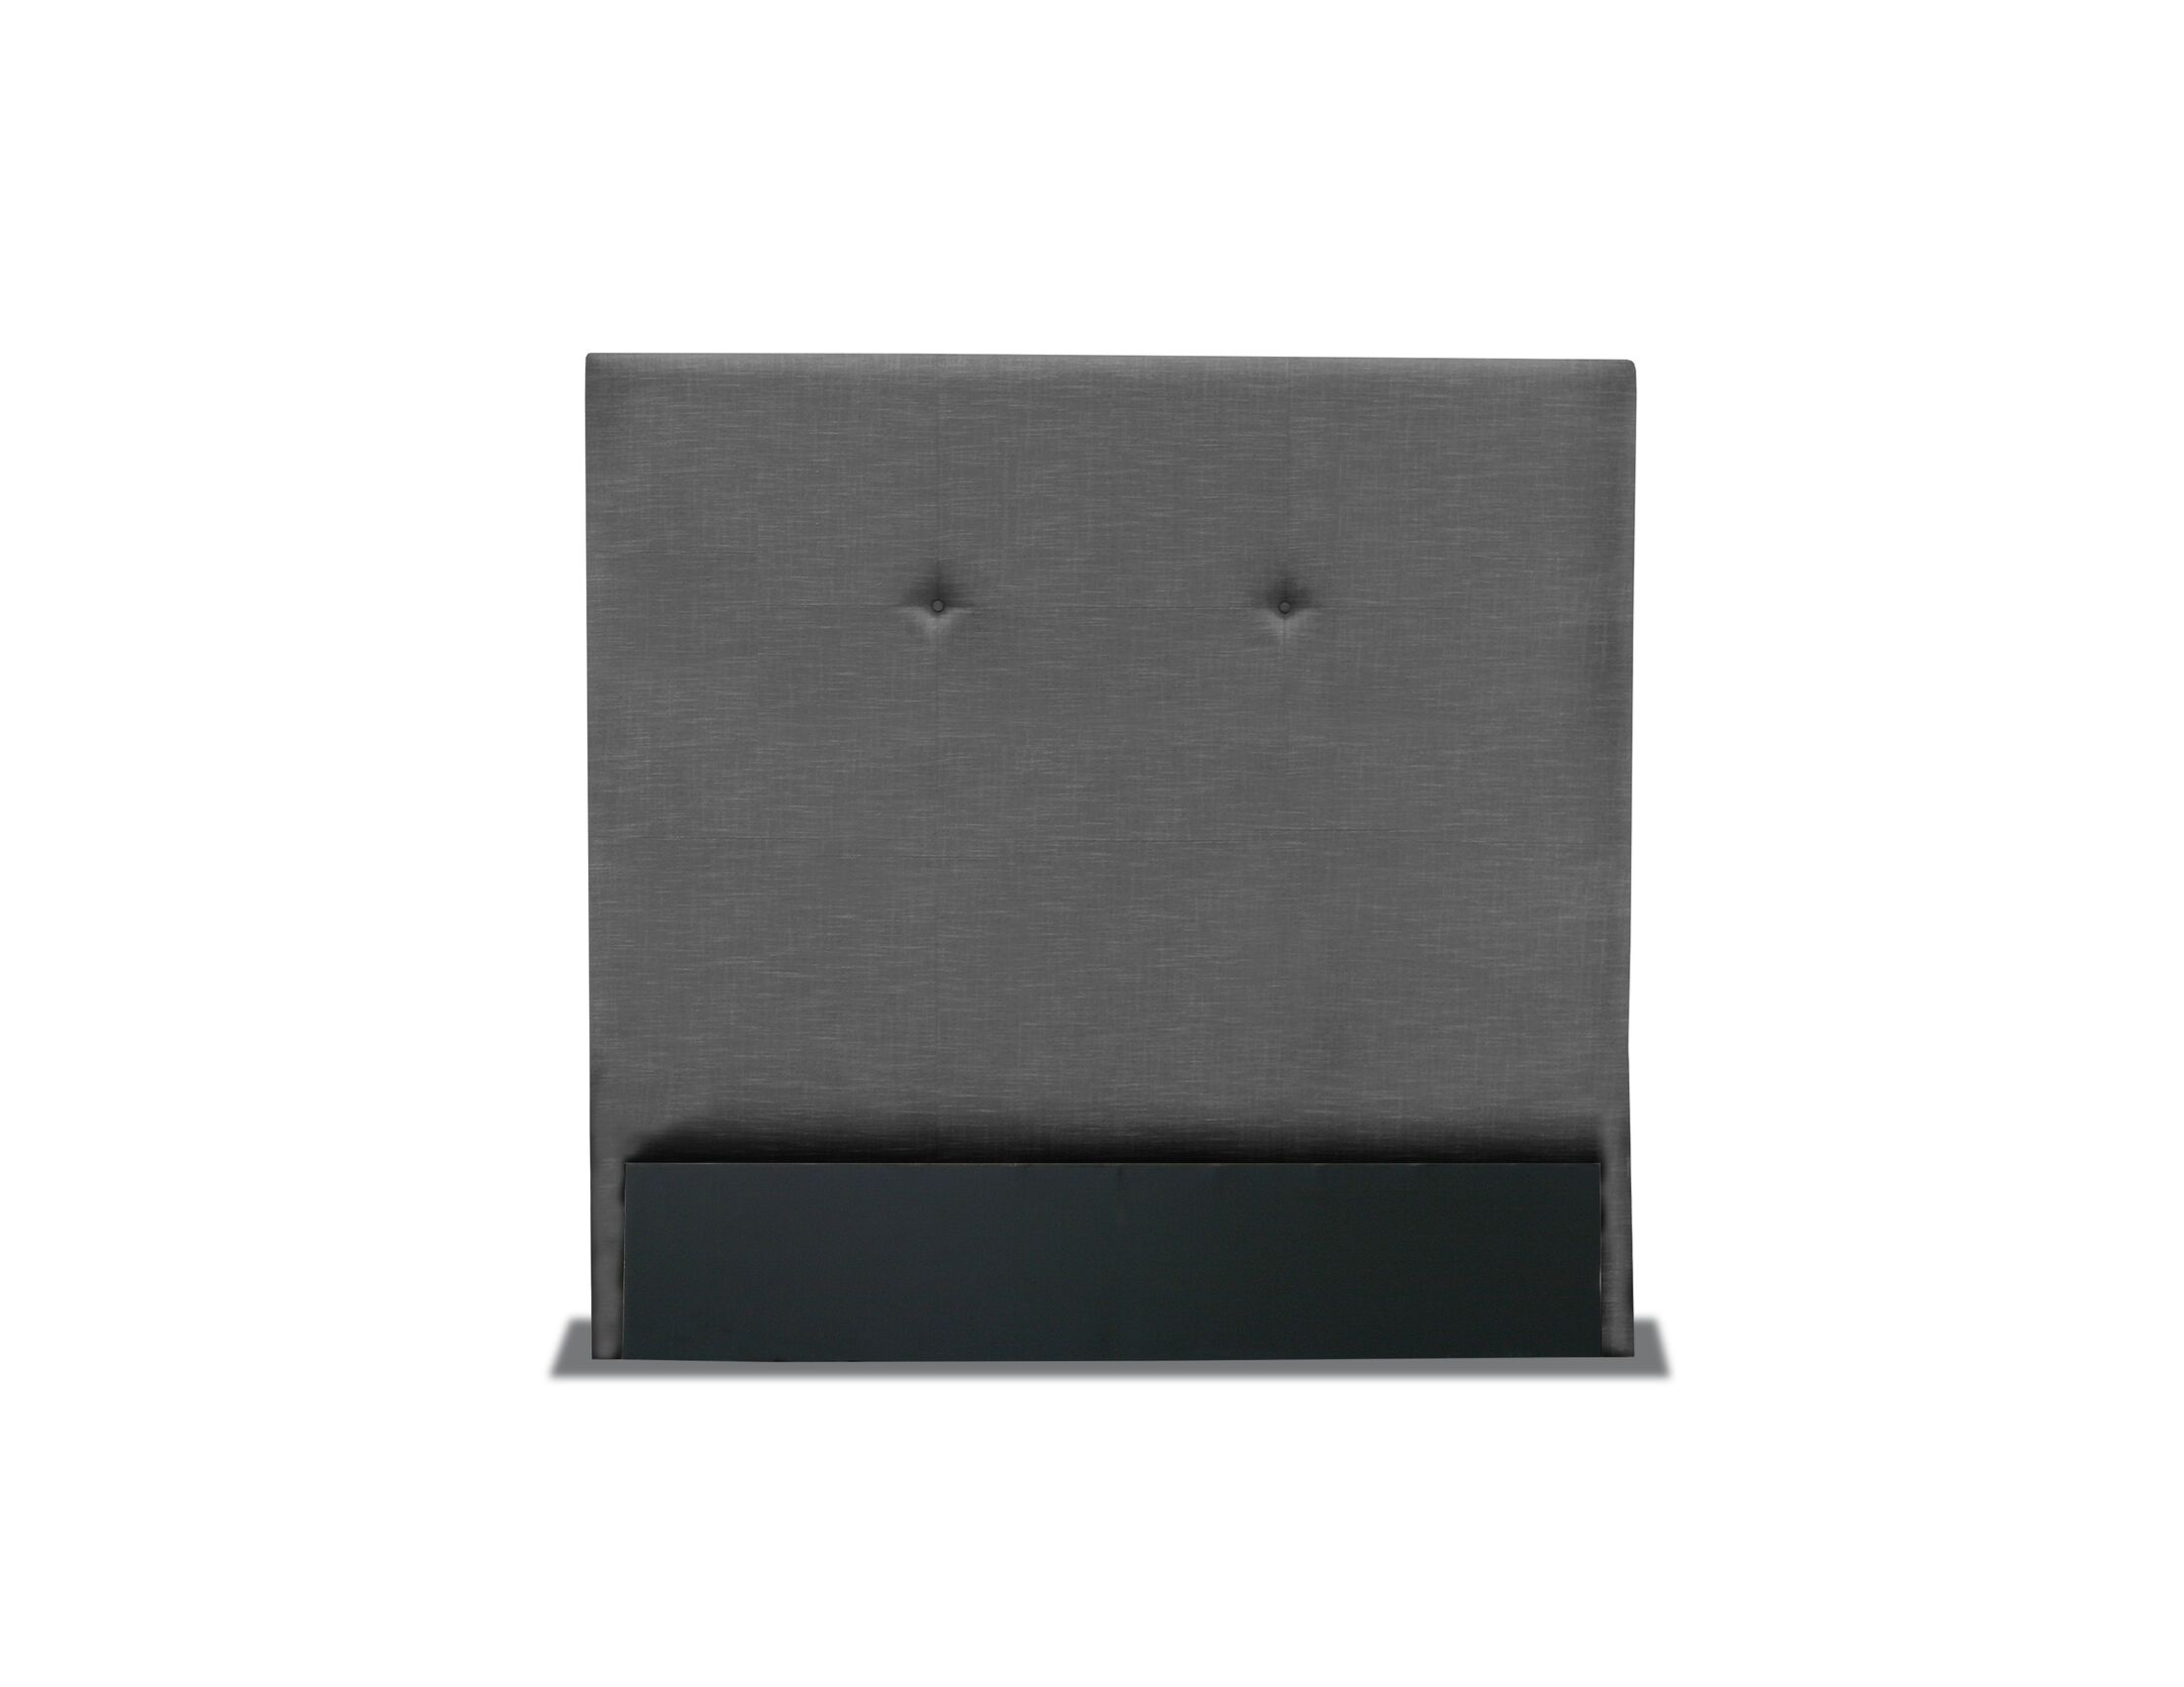 Handley Simple Tufted Upholstered Wingback Headboard Color: Charcoal, Size: High Height Queen